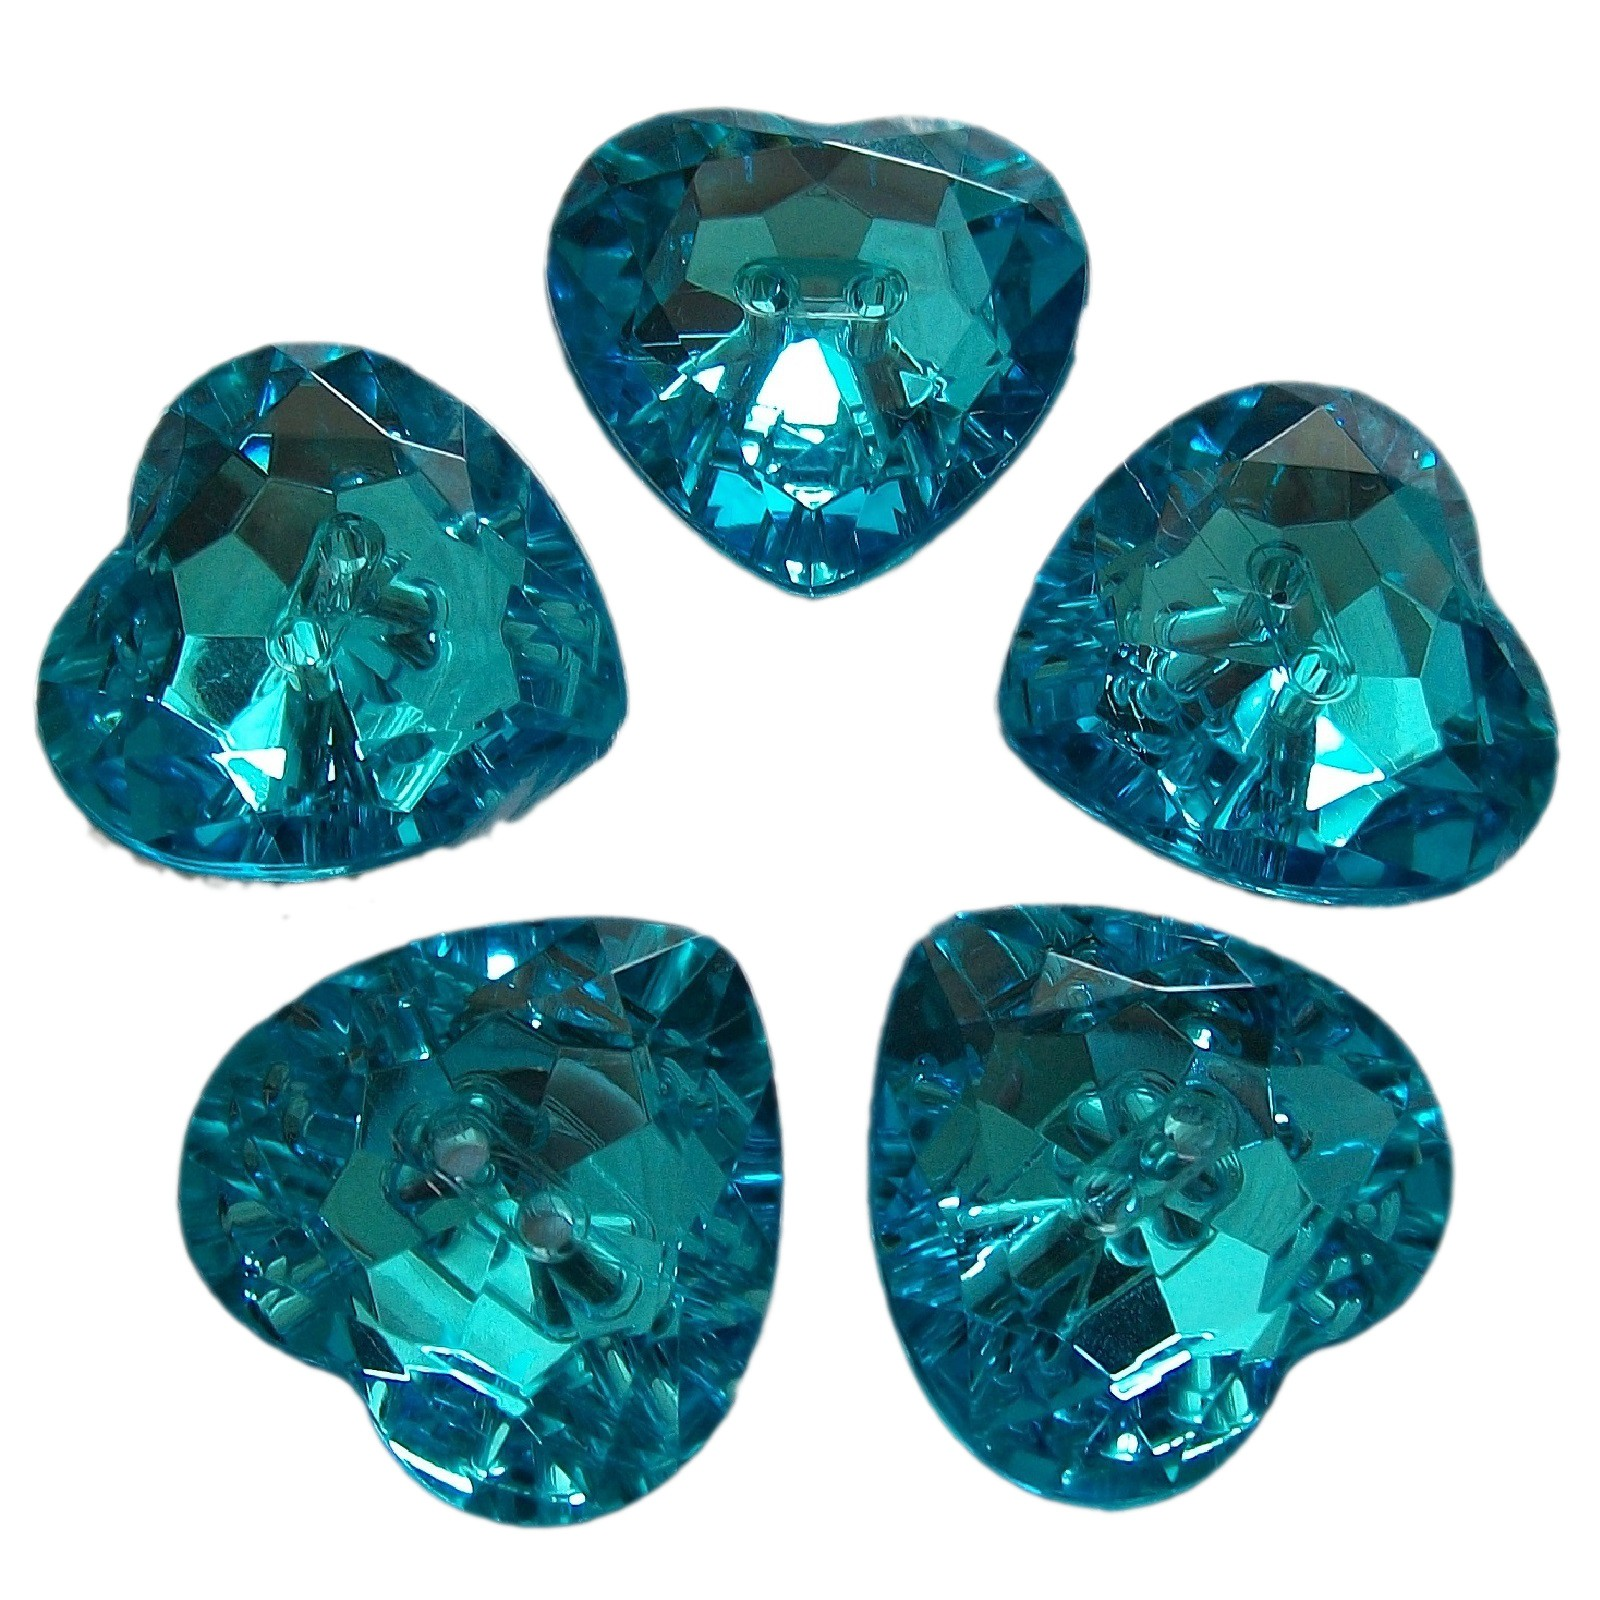 Acrylic Crystal Effect Heart Shape Buttons 32mm Turquoise Pack of 5